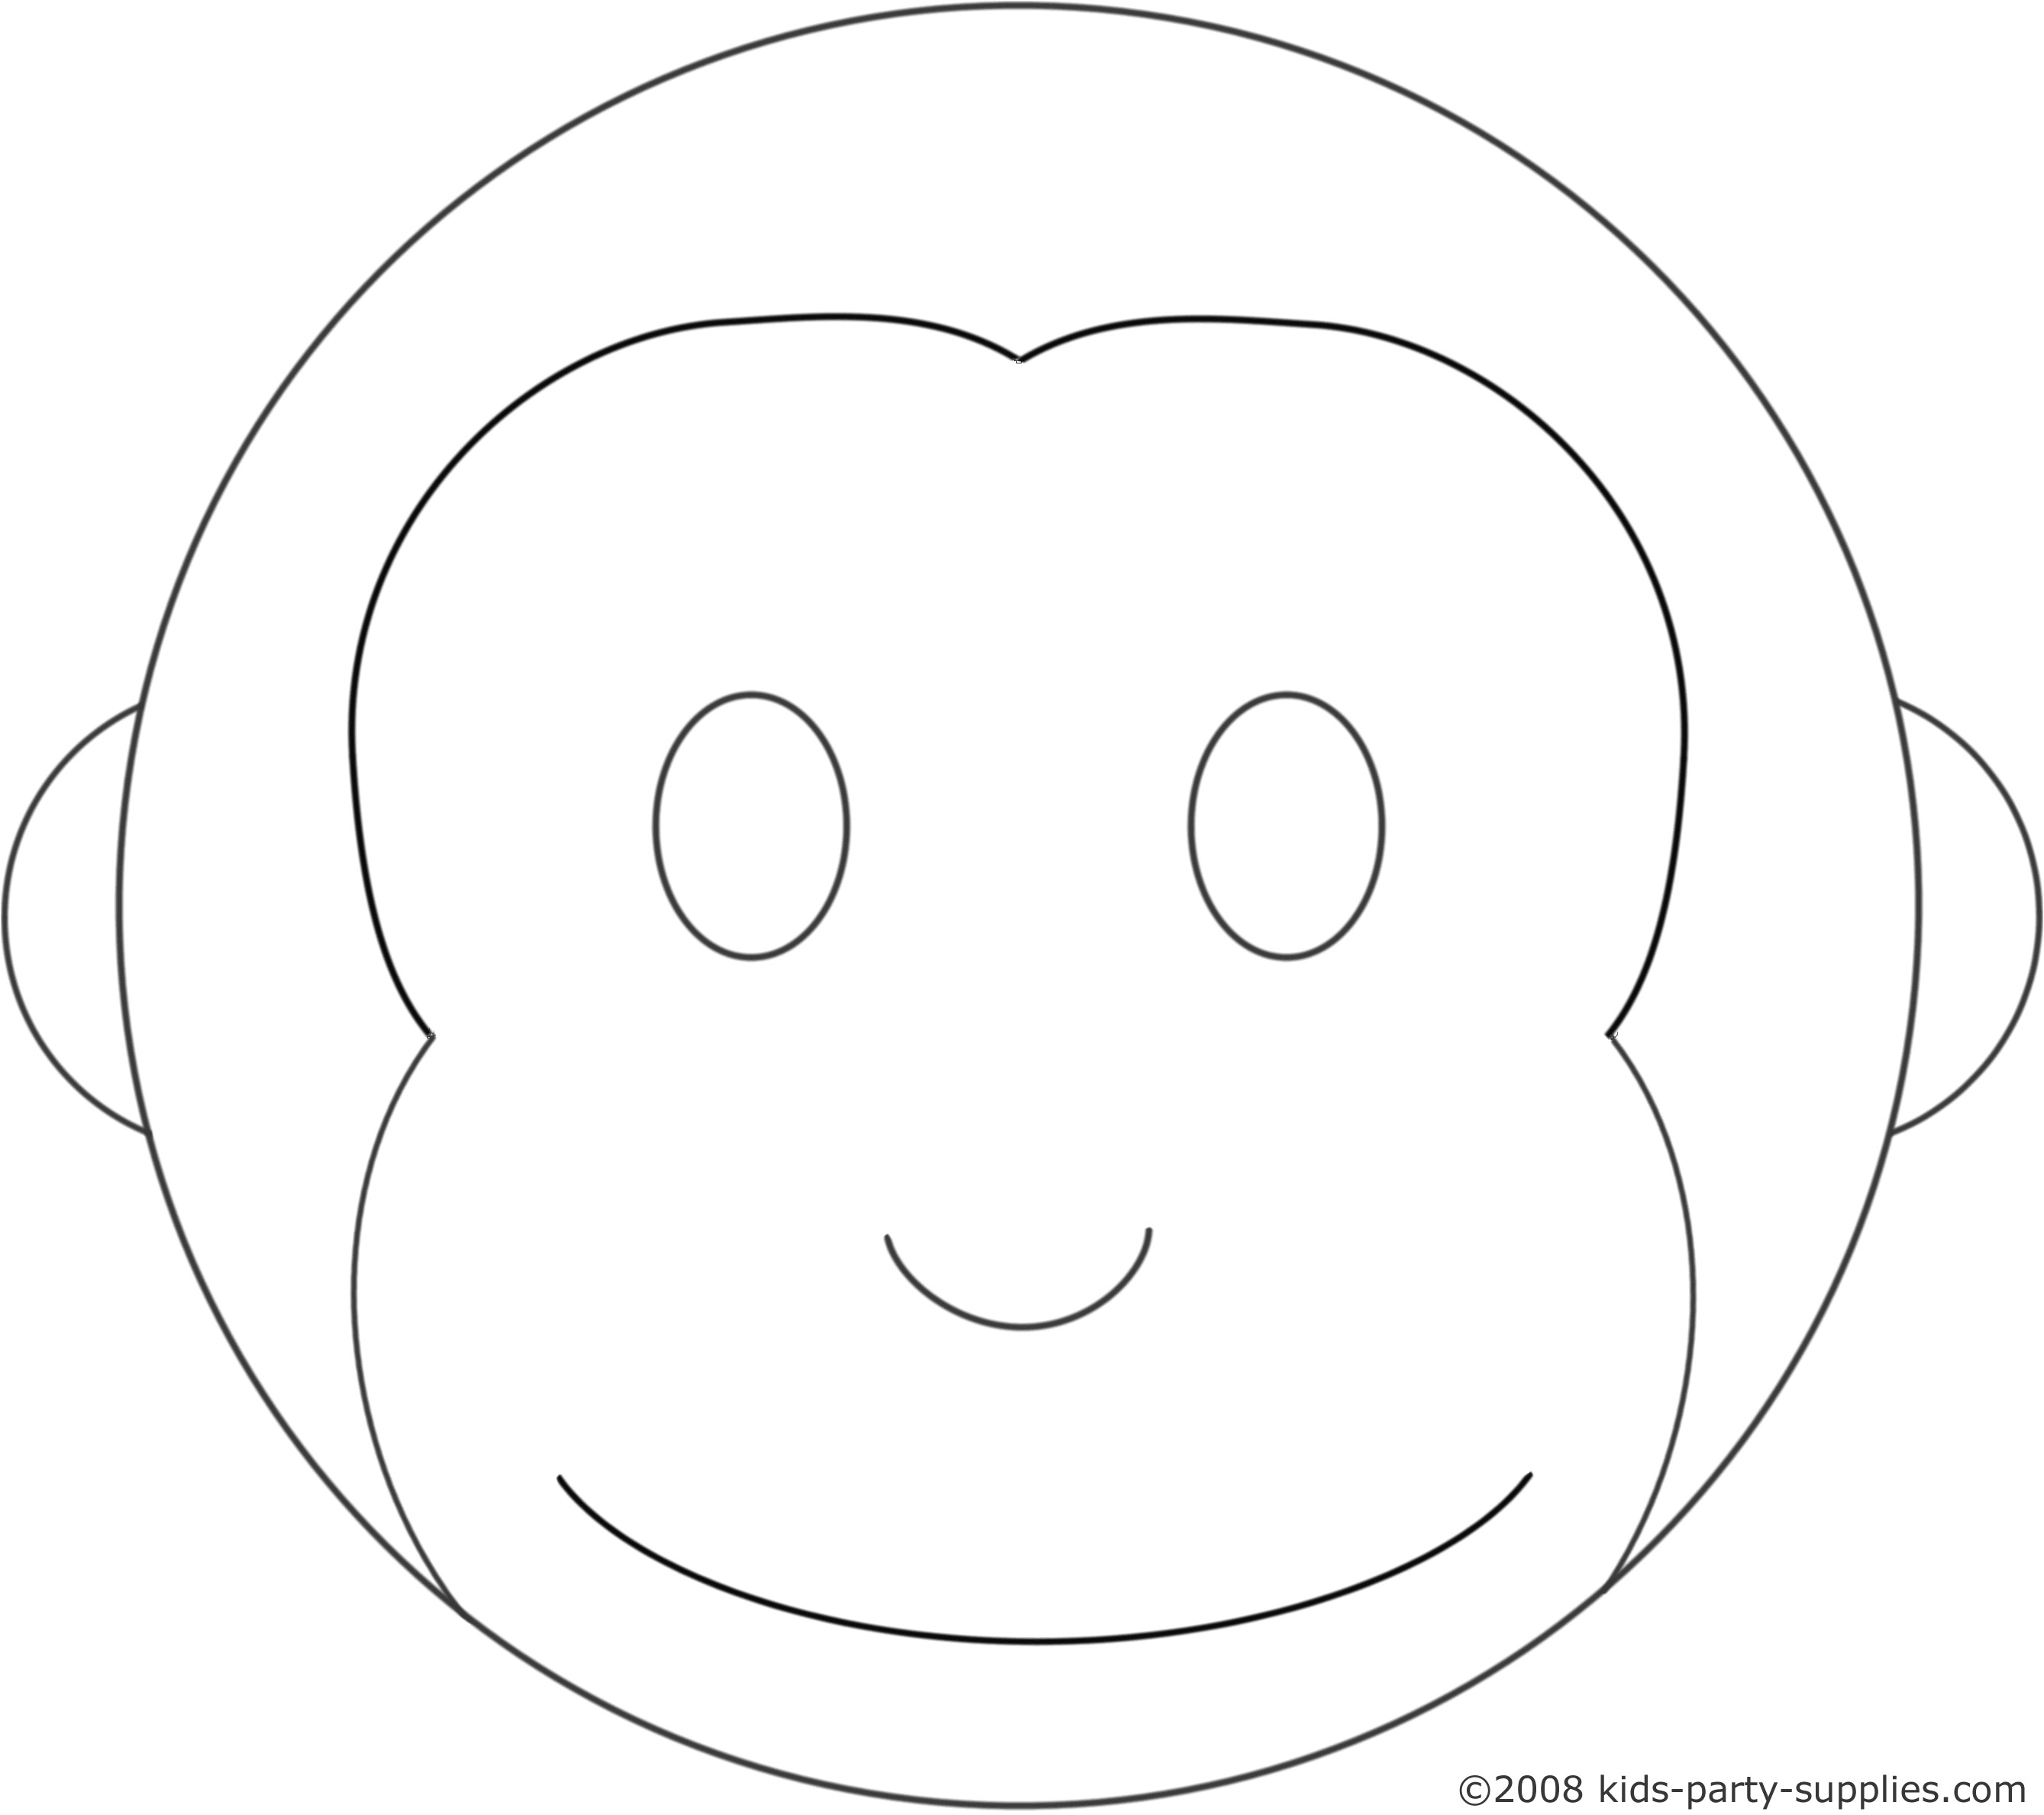 Monkey Birthday Cake Template Monkey Cake Template Birthday Ideas Pinterest